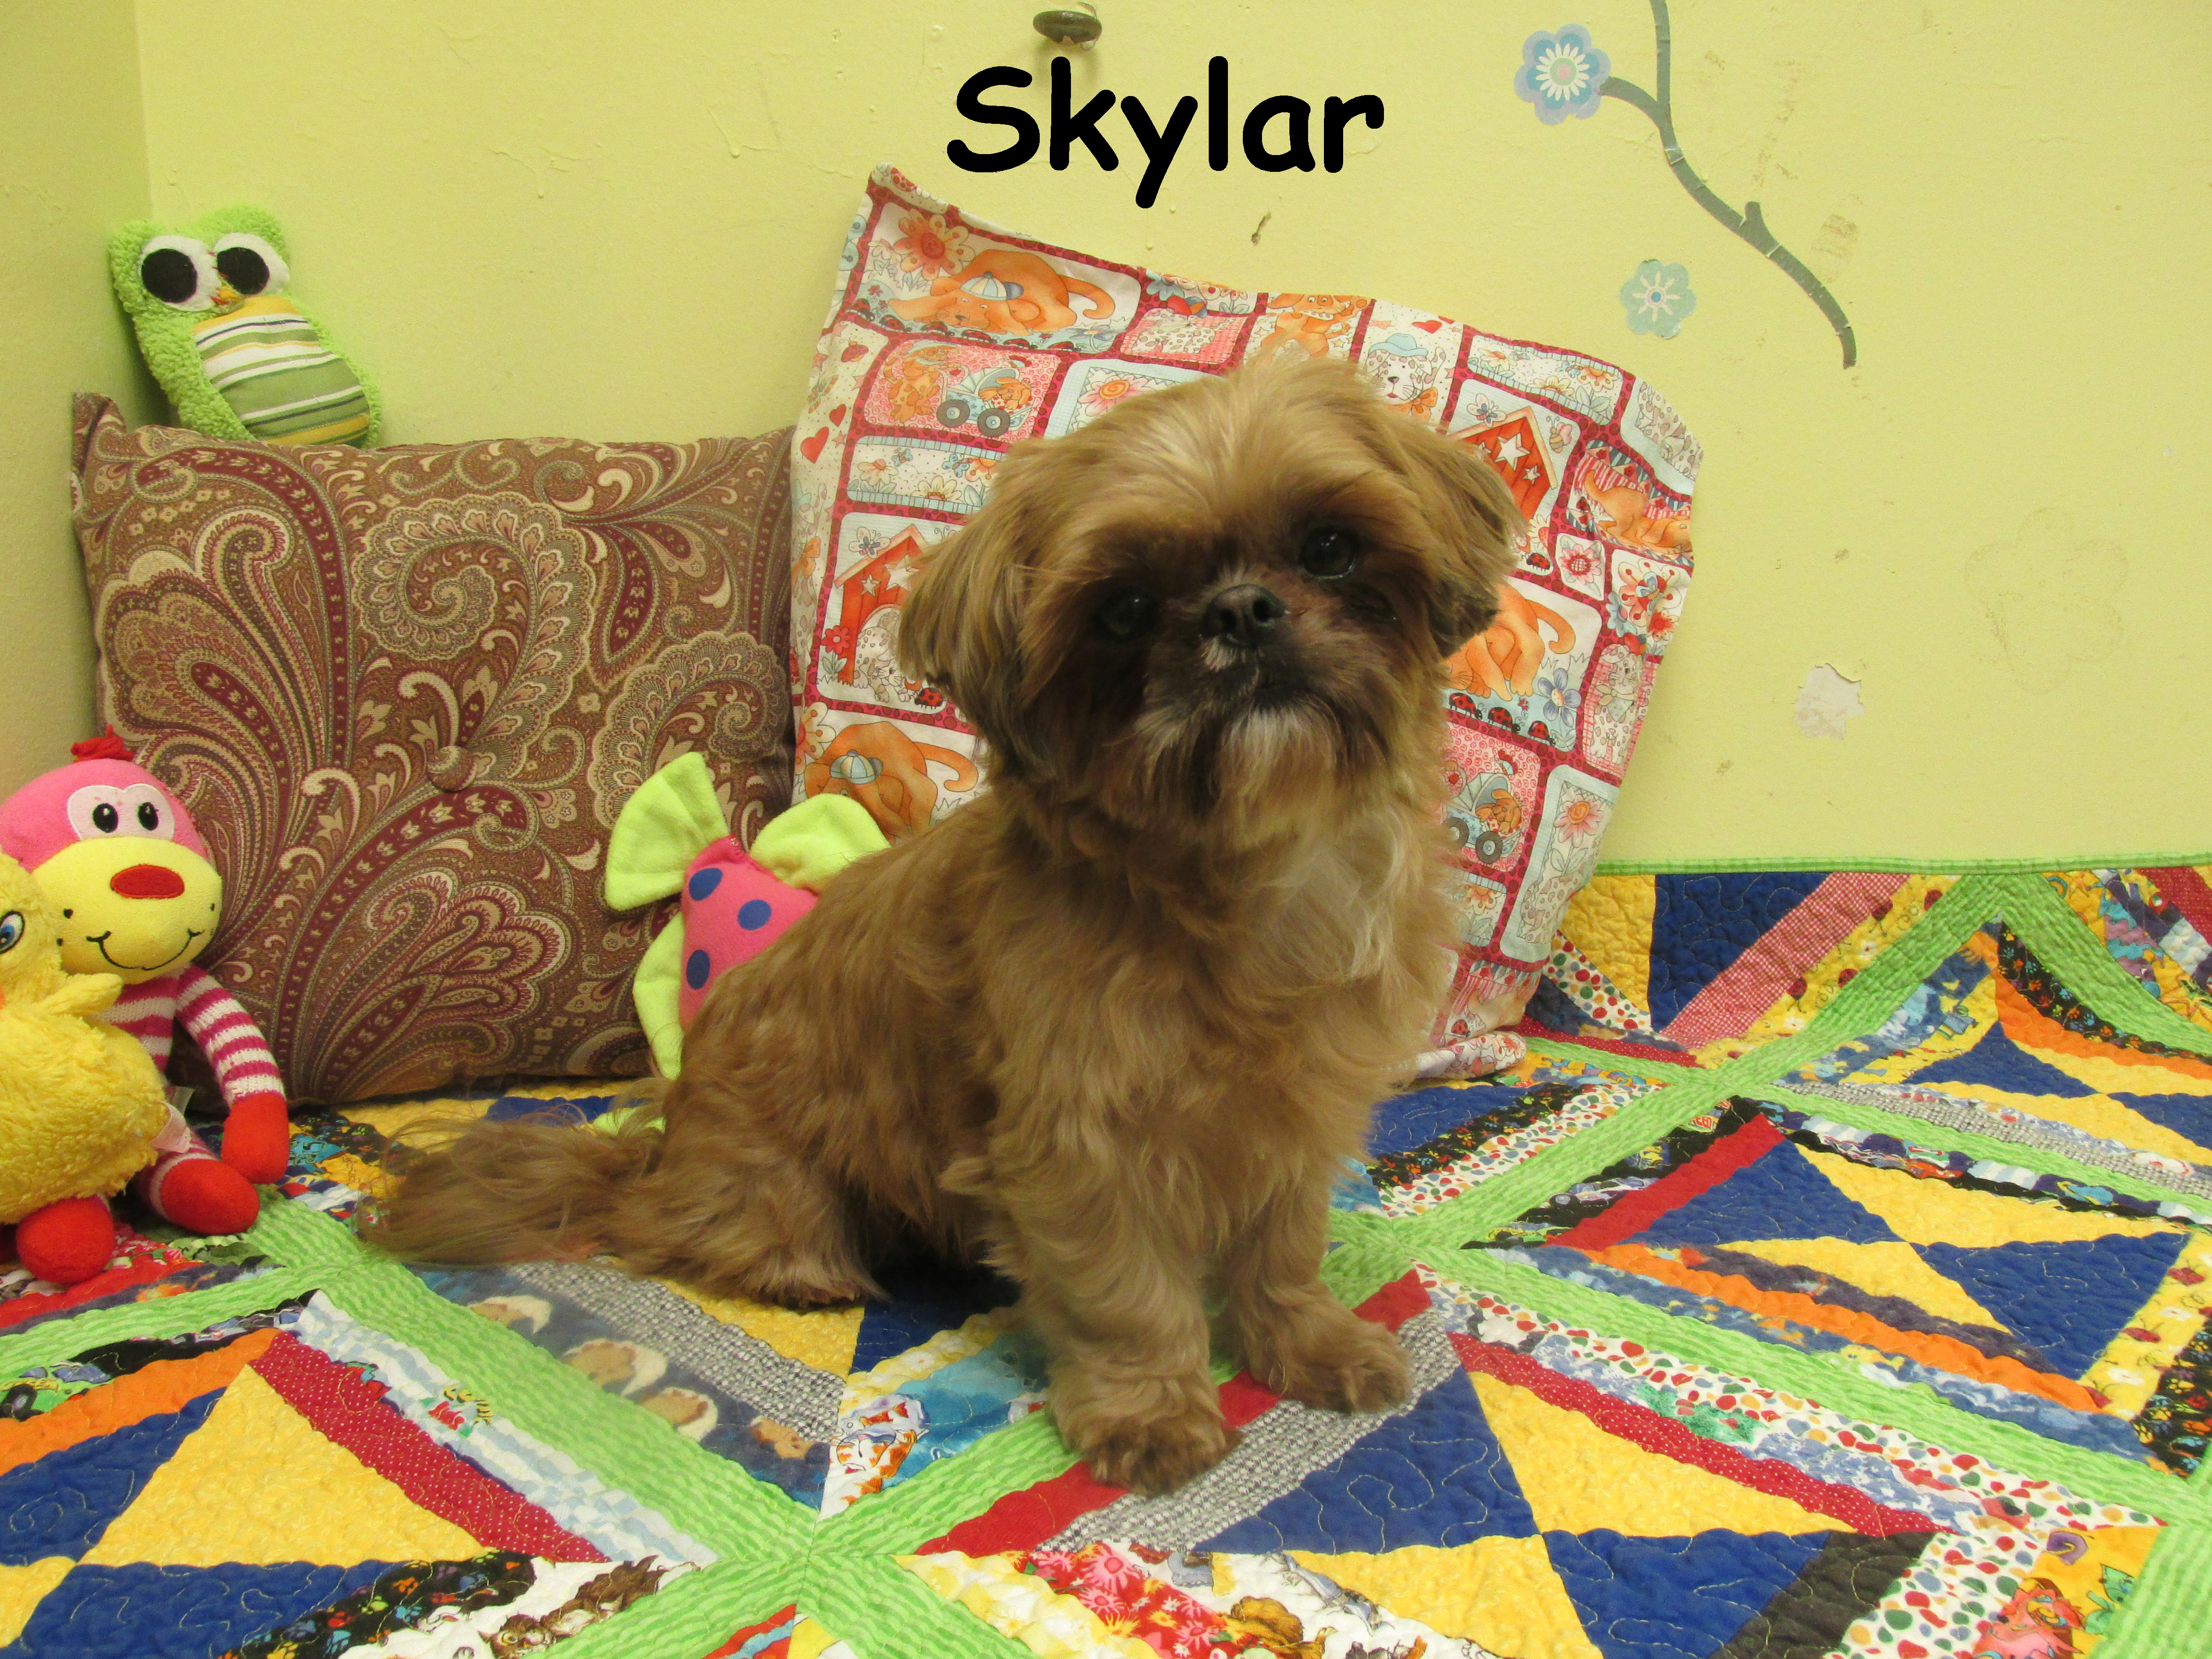 Home Shih Tzus Akc All Puppies Home Raised